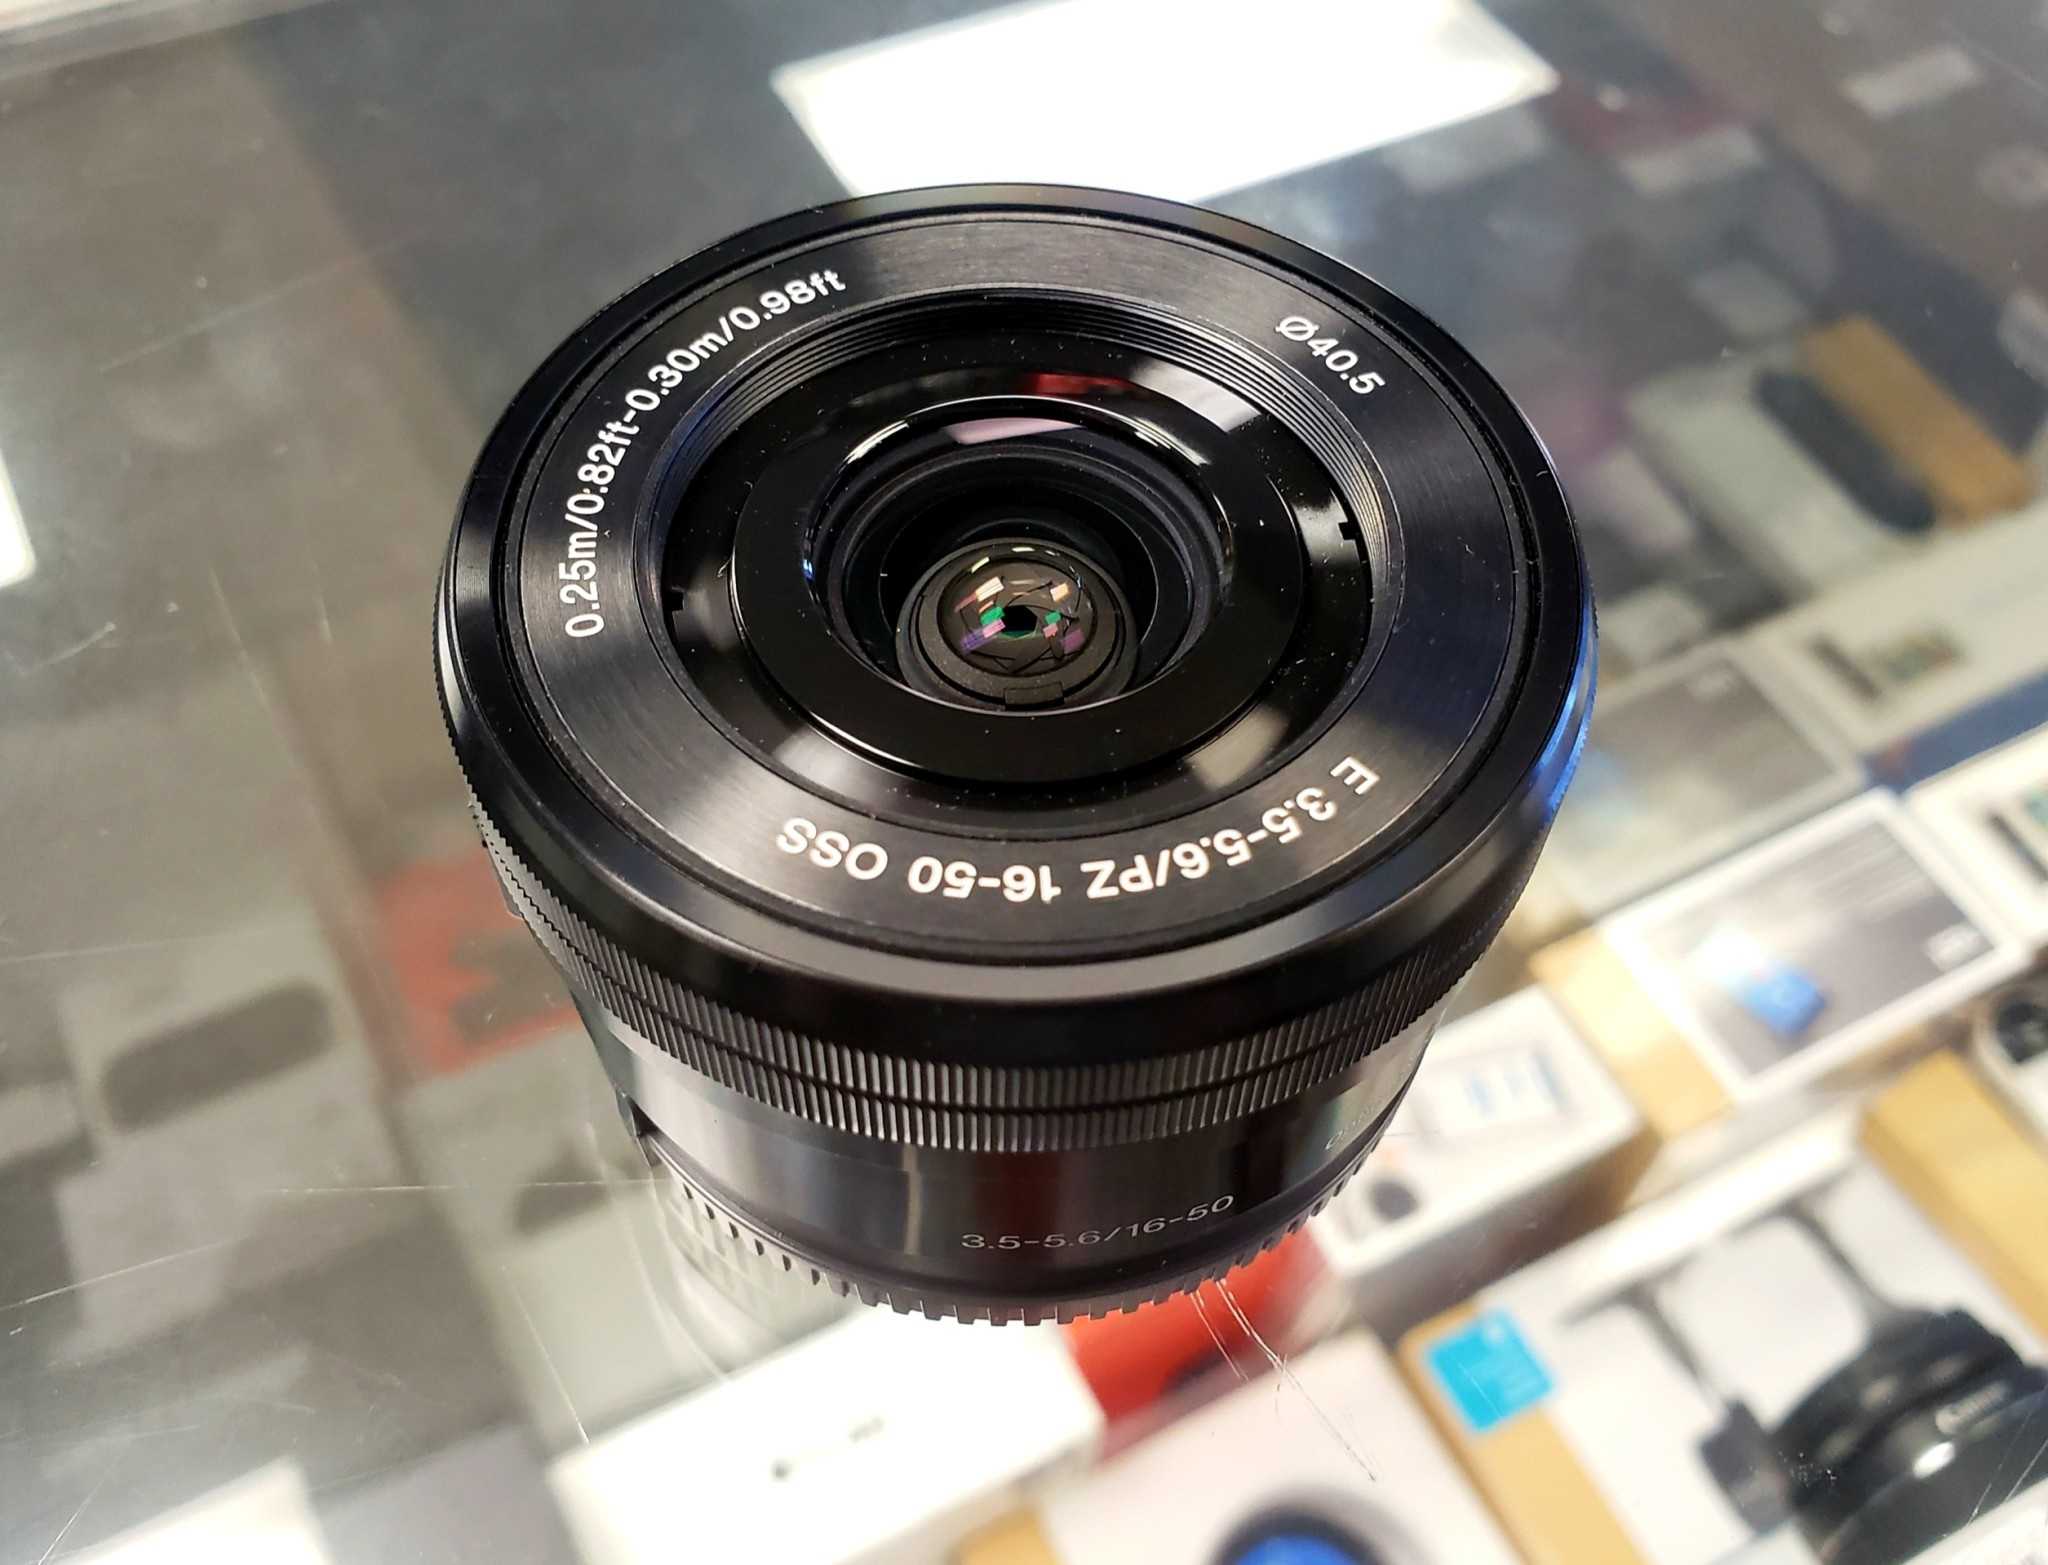 Sony 16-50mm f/3.5-5.6 OSS SELP1650 Telephoto AF Lens